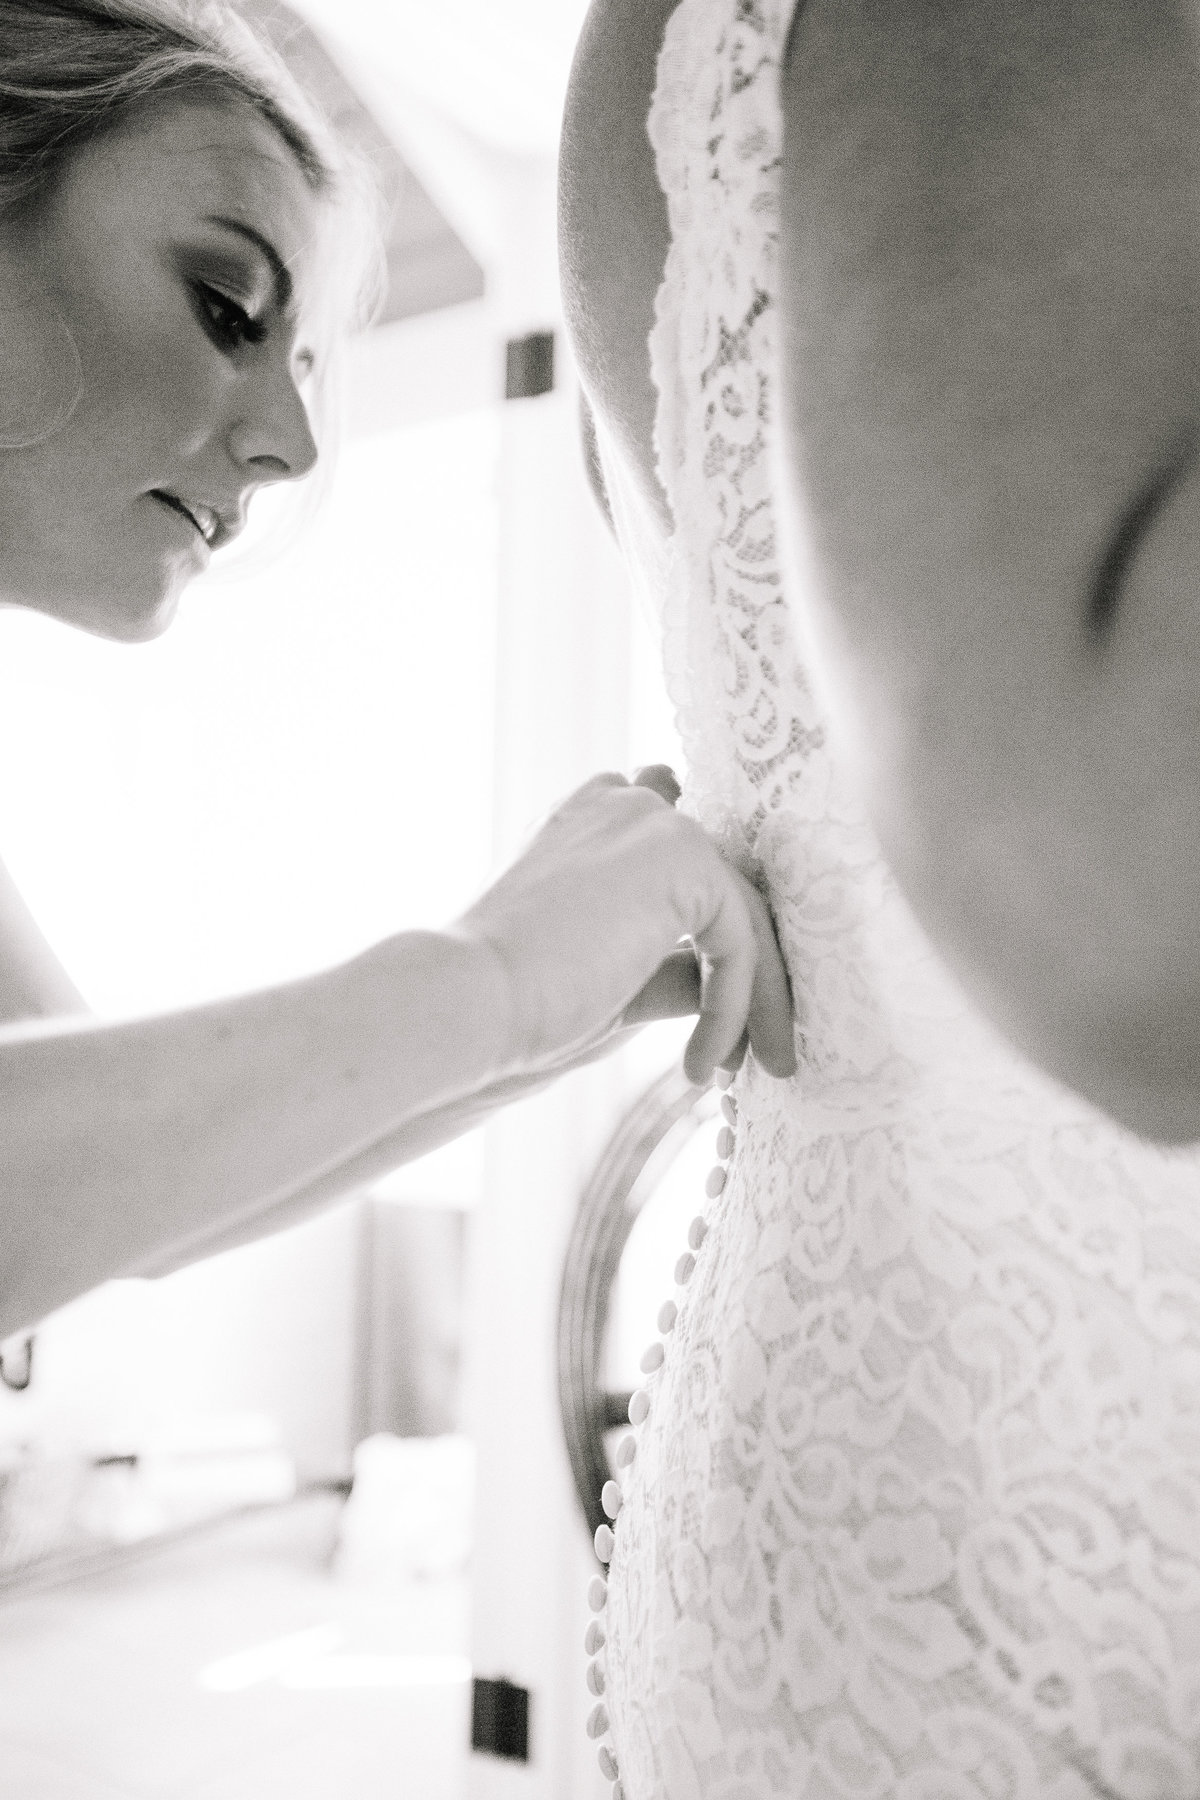 Bride getting ready for her wedding at Beltane Ranch in Sonoma.